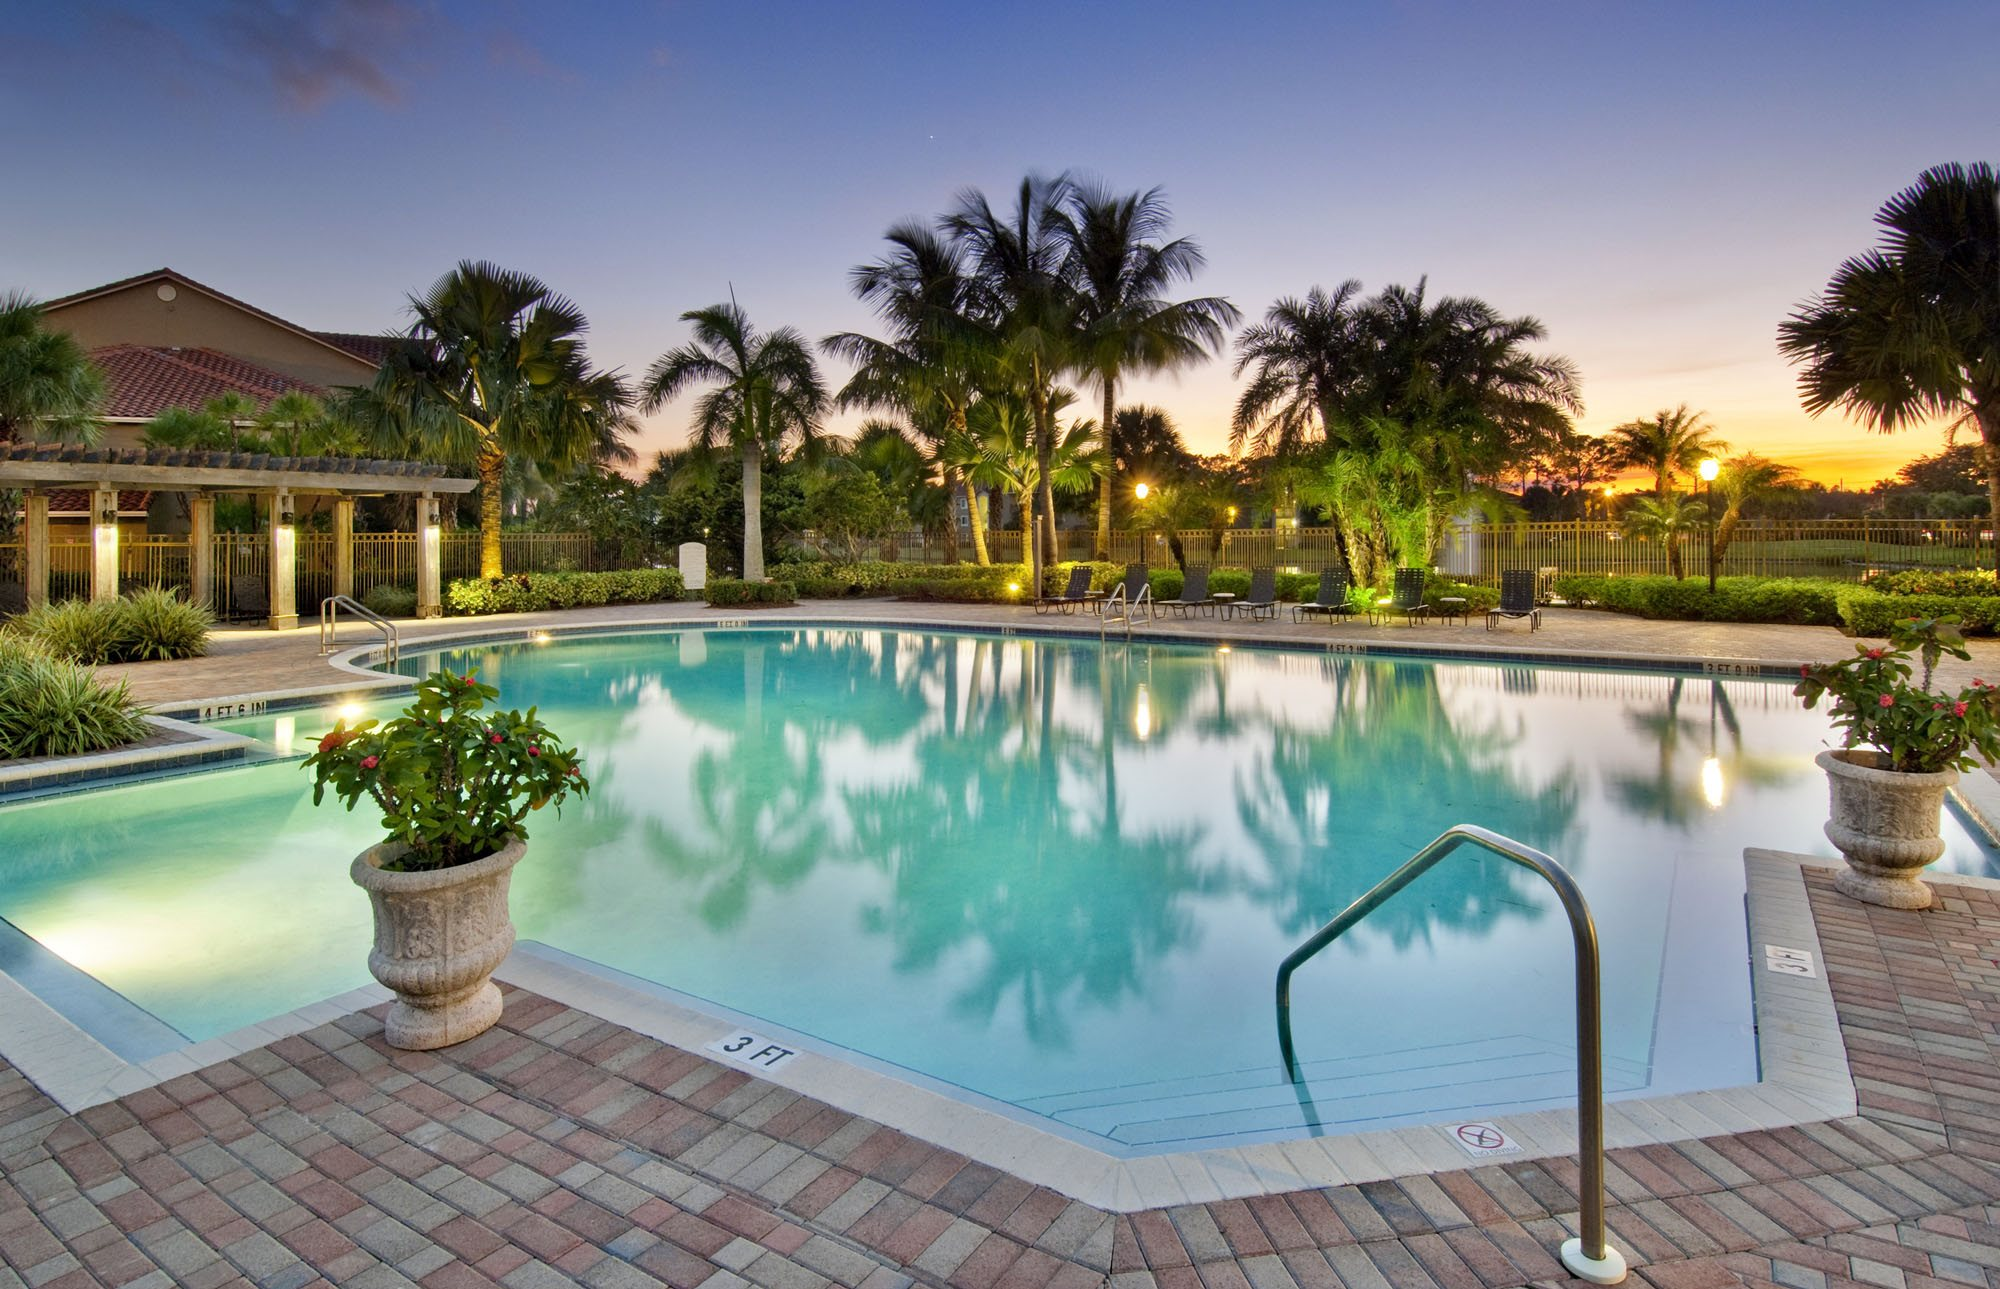 Oasis Delray Beach Apartments Pool at Sunset